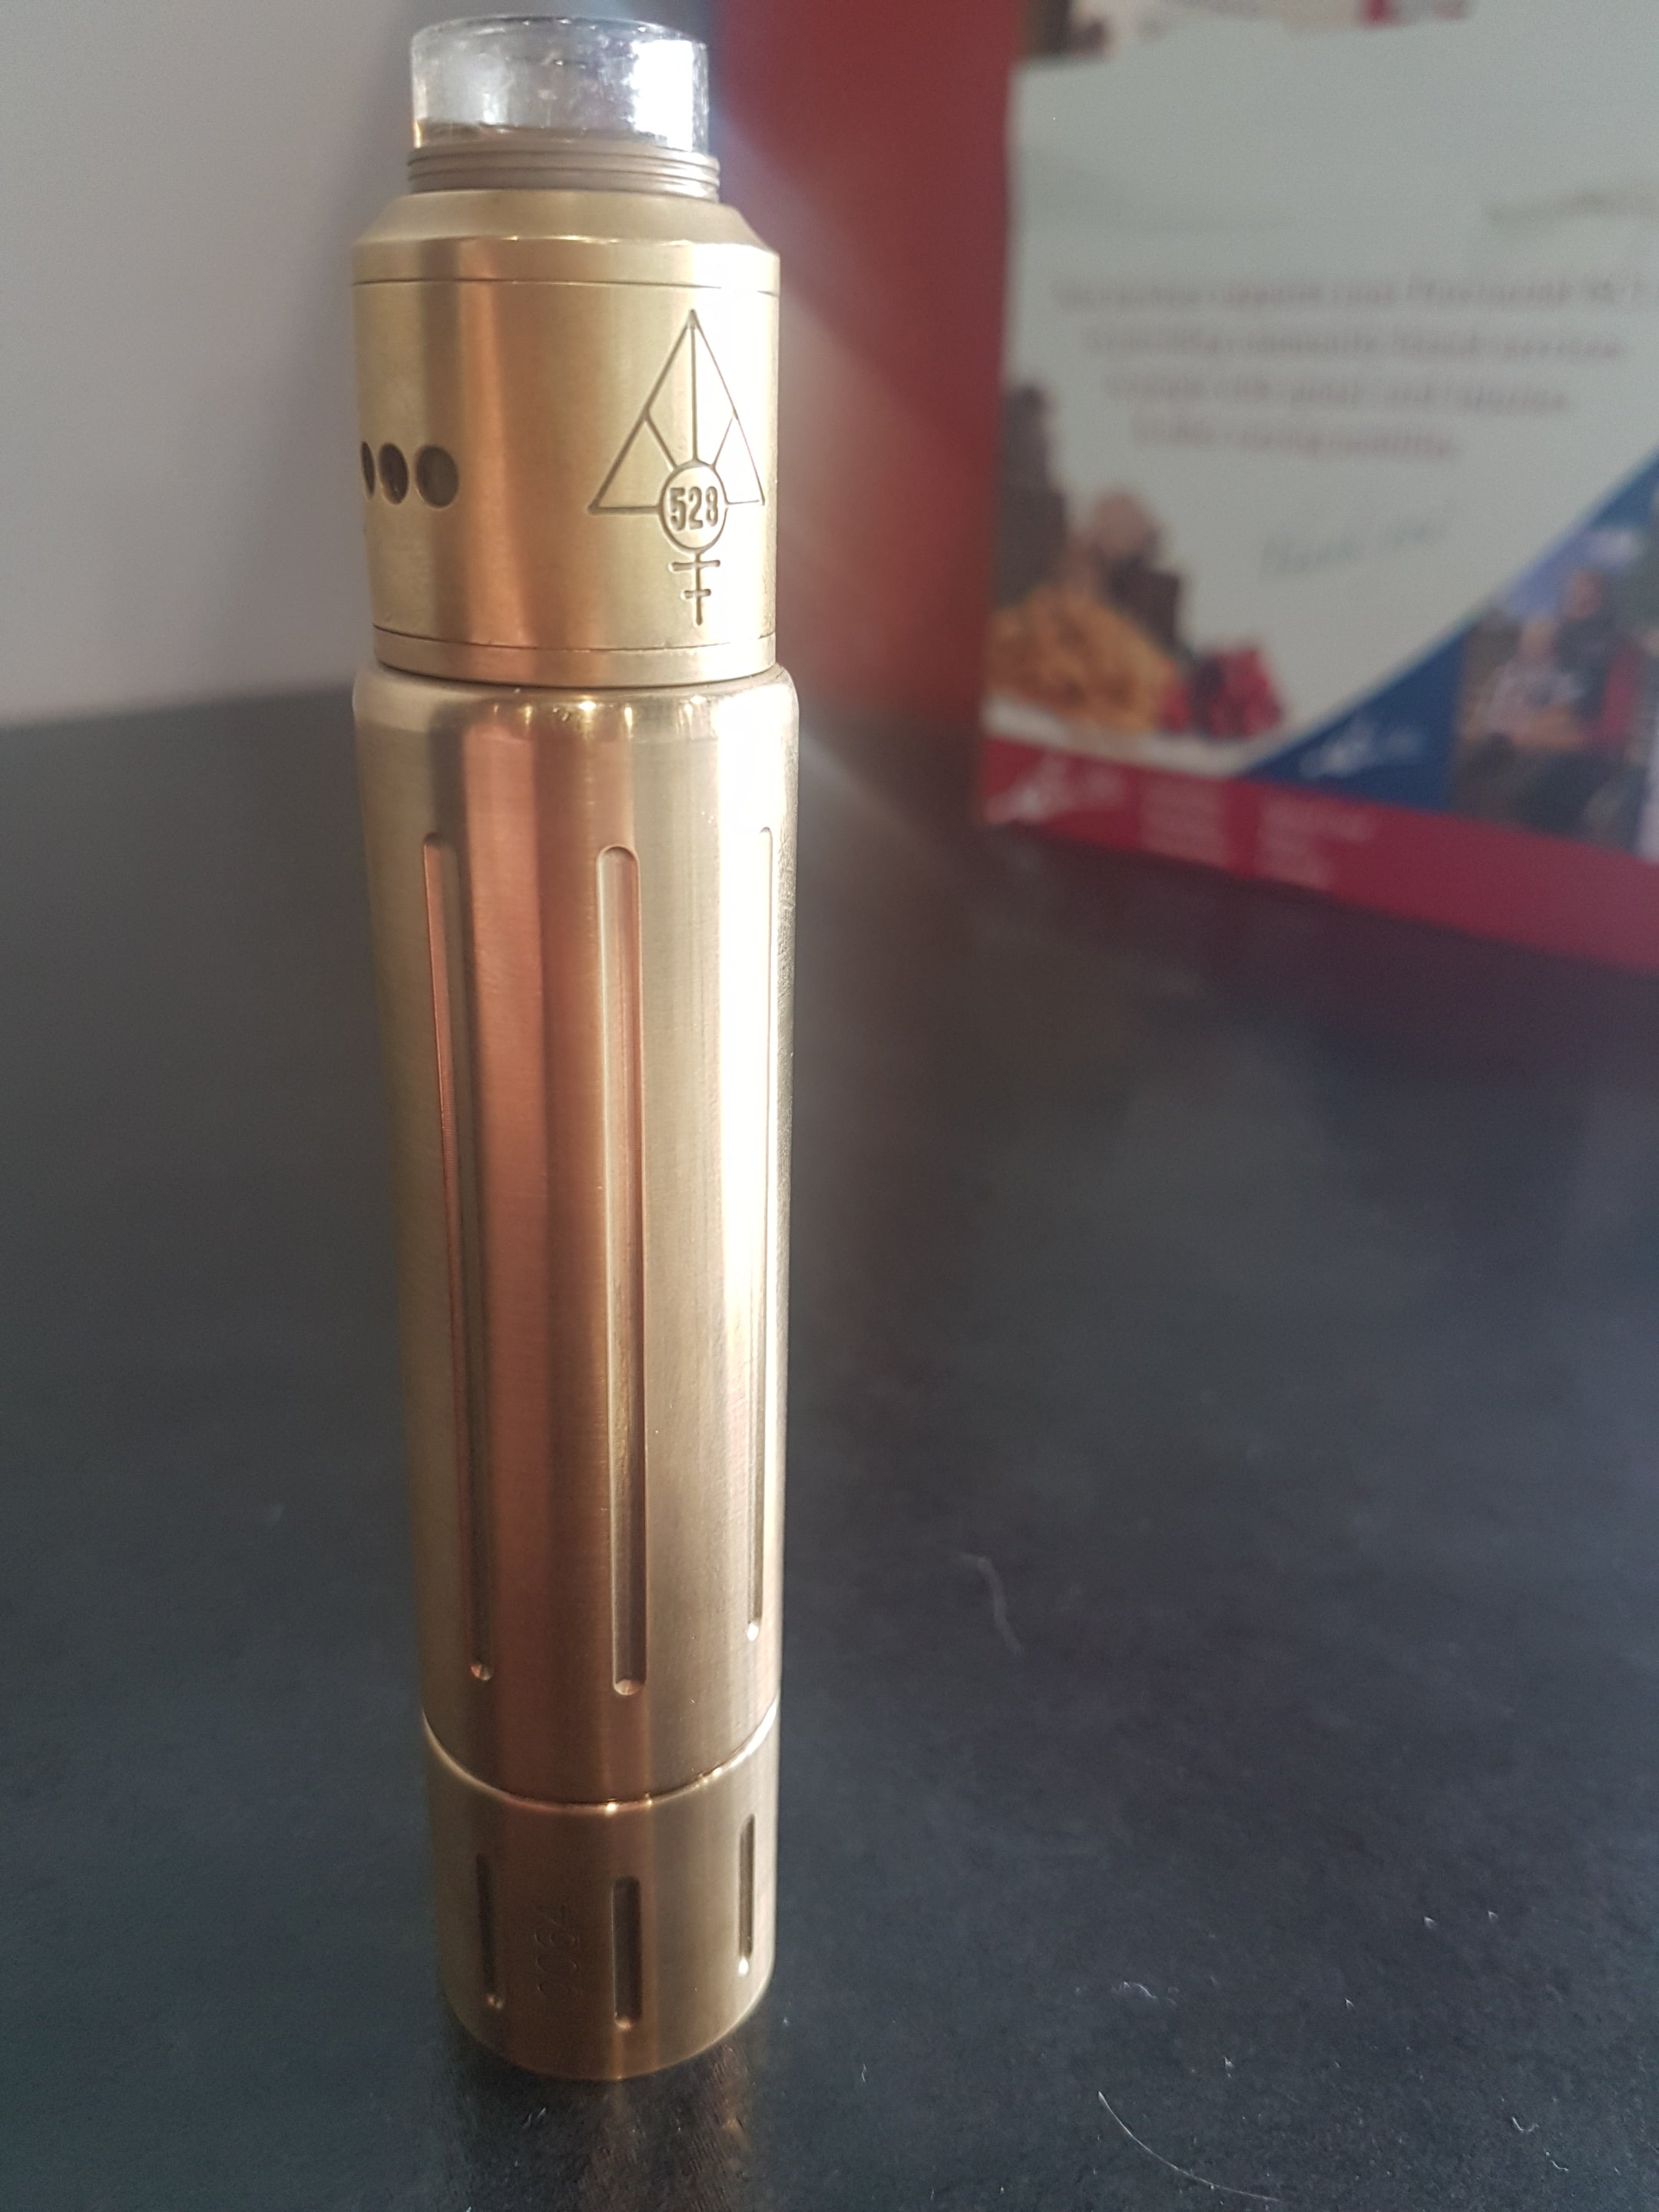 Dragon Mod Co. Twenty7 mod - Vape Cafe Ltd